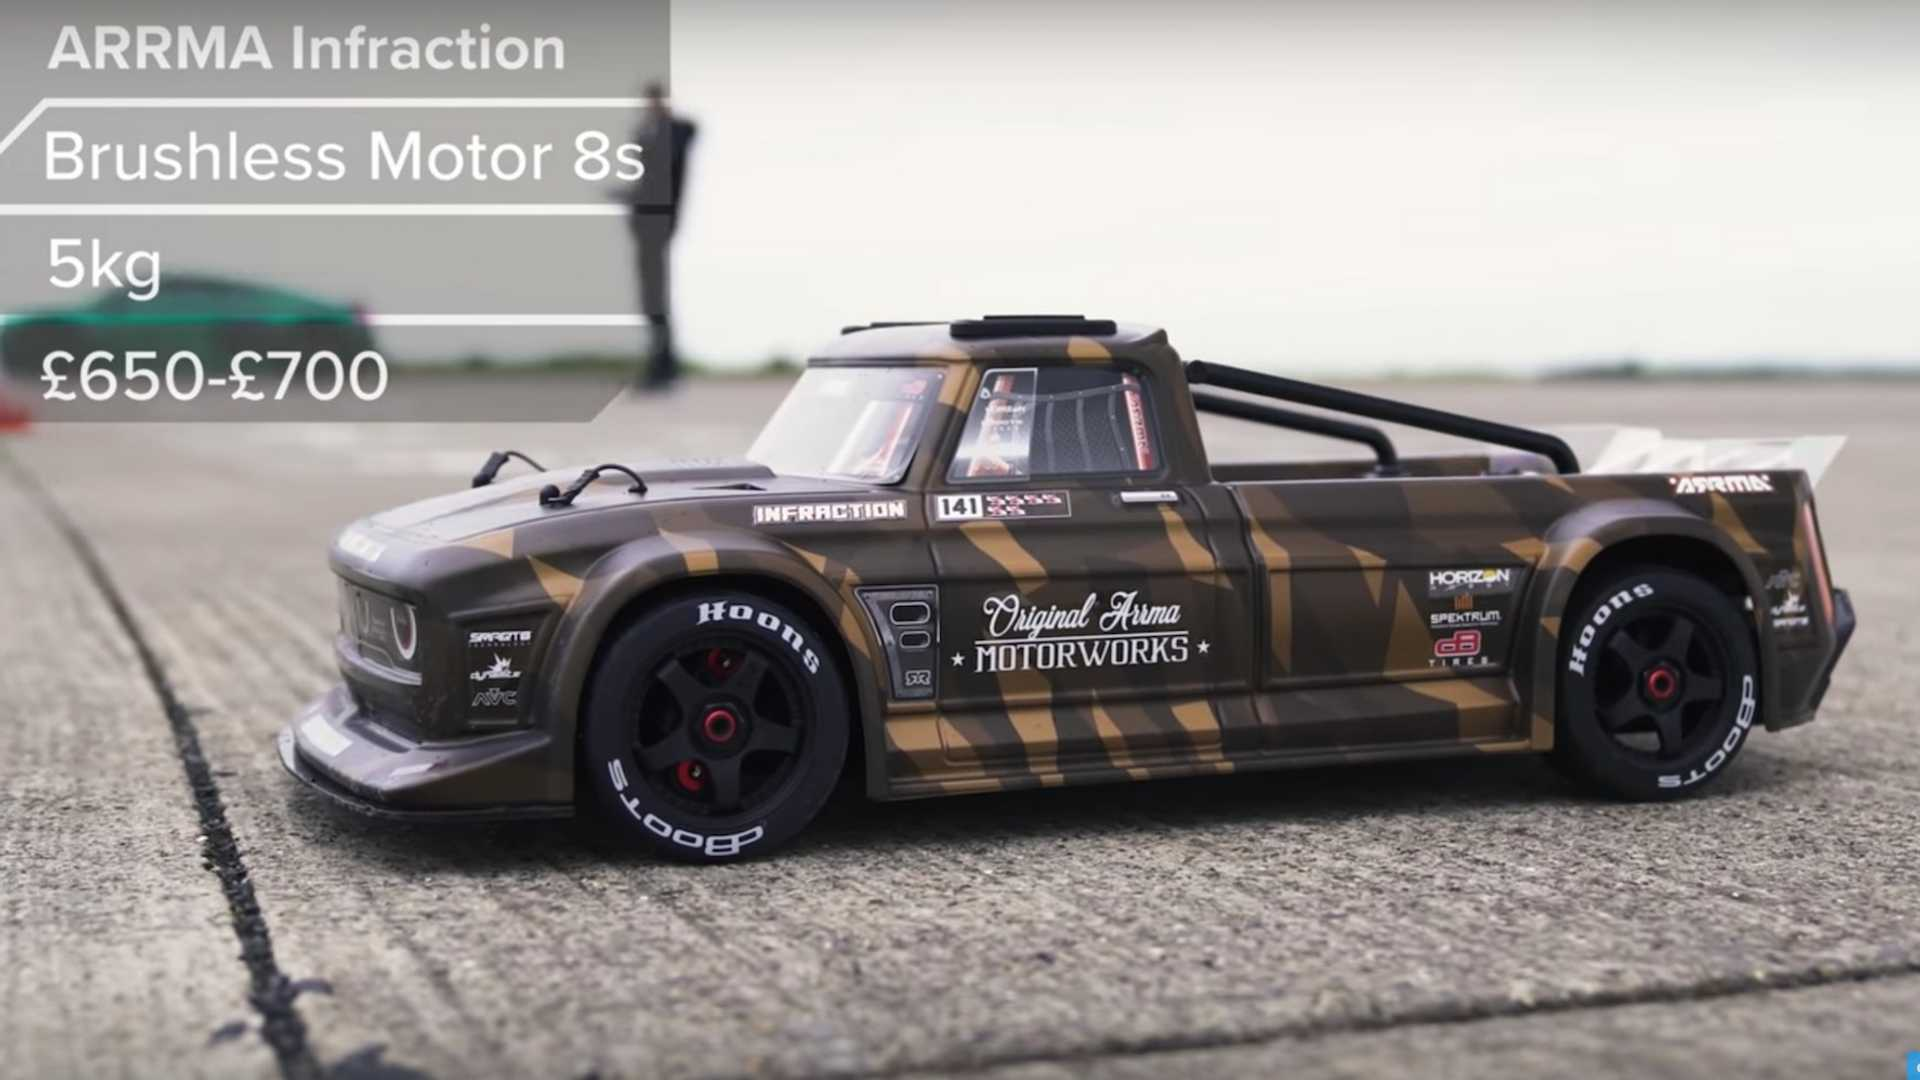 CarWOW surely wanted to try something new with this latest drag race! The team pitted an Audi R8 and a Mercedes-AMG G 63 up against a 1:7 toy replica of a pickup truck and a racing-spec aerial drone!